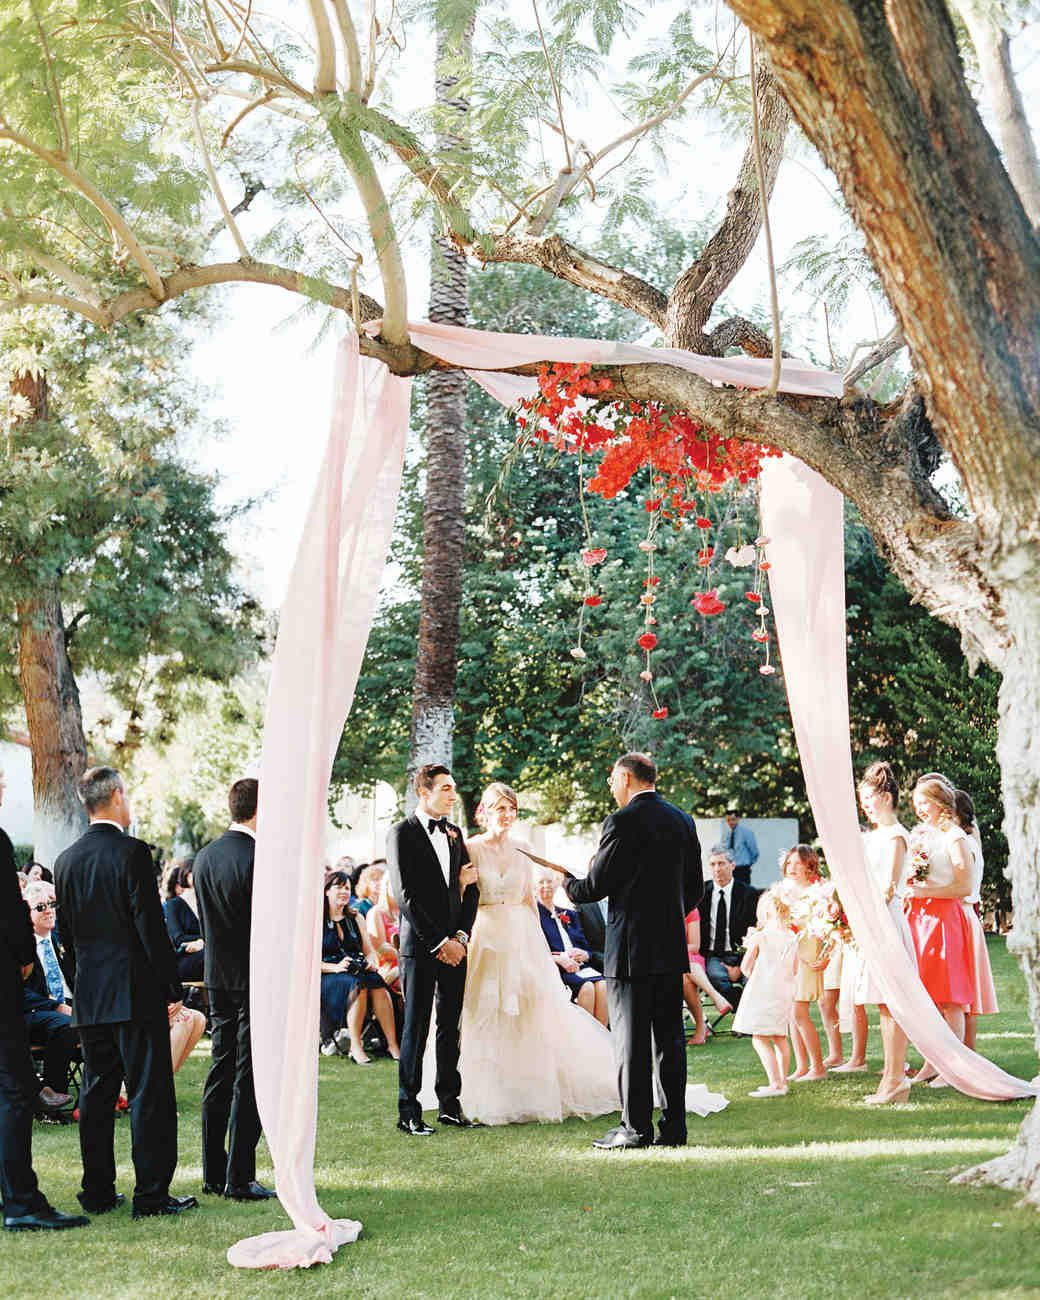 Flowing Fabric Wedding Canopy HANGING CANOPY Gauzy Blush Pink Ranunculus And